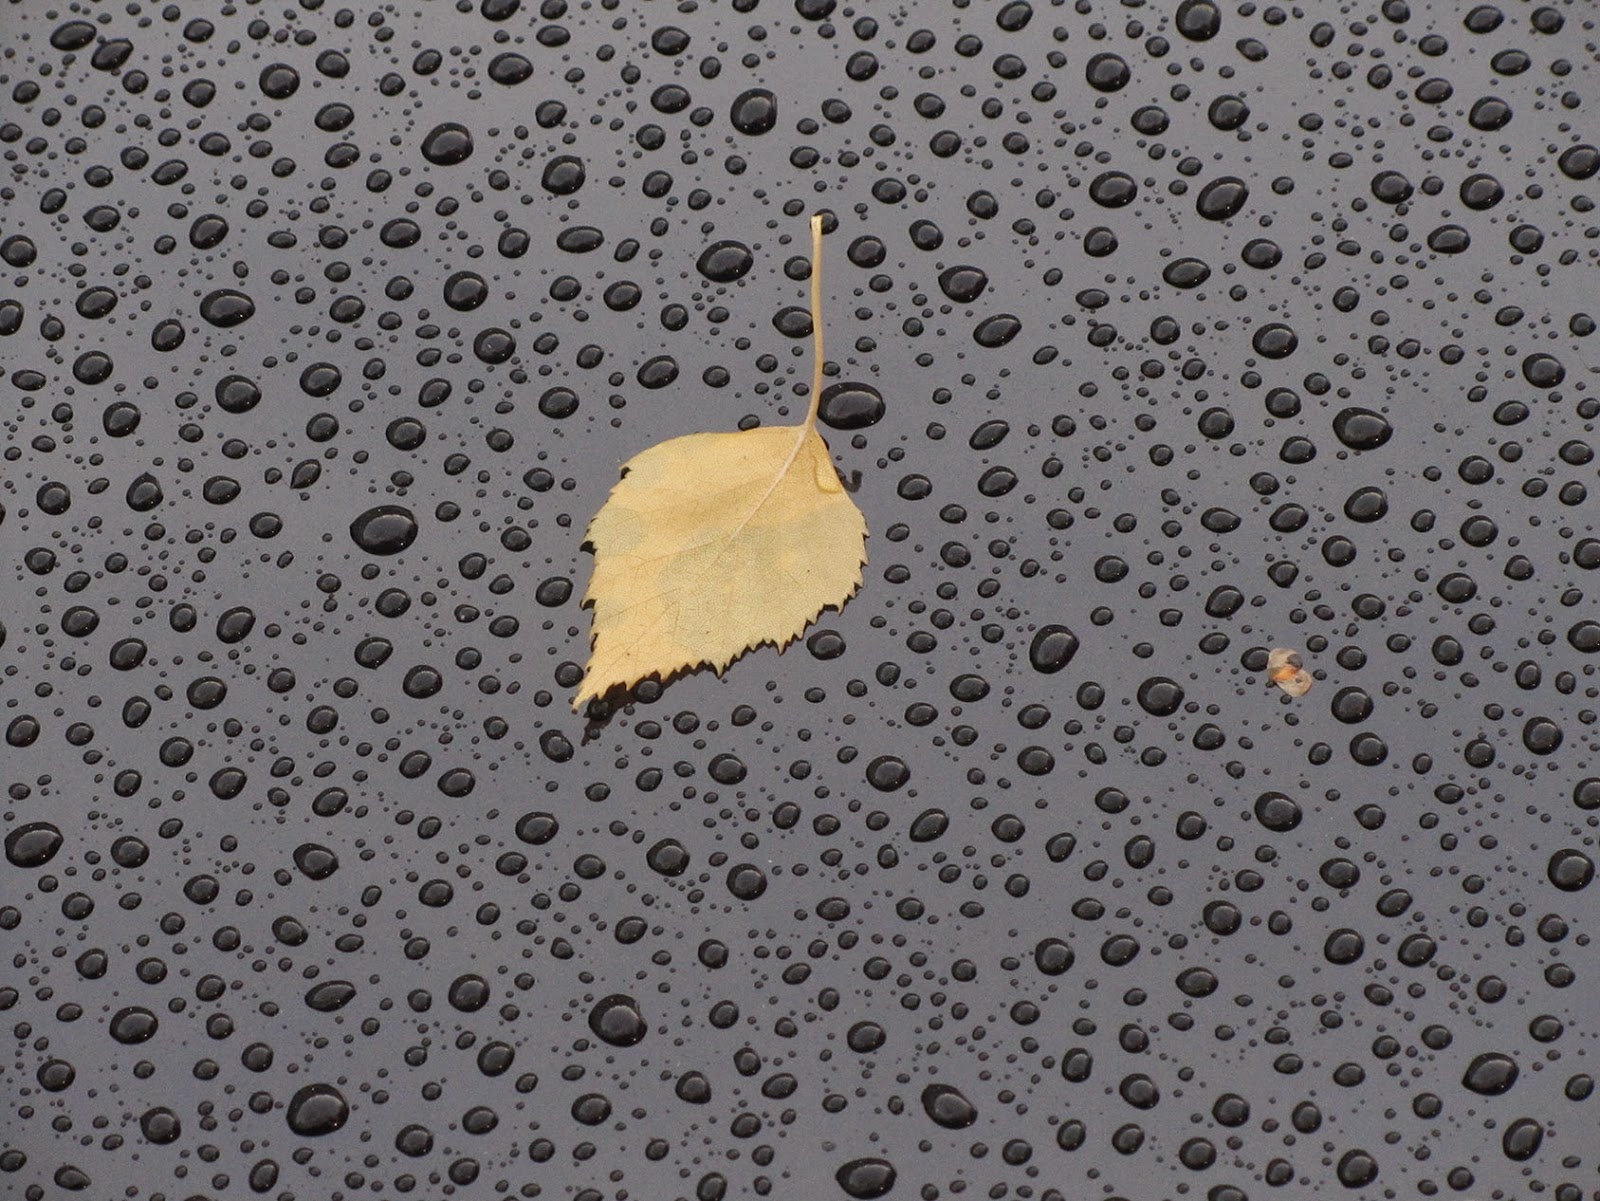 raindrops and yellow leaf on a black car